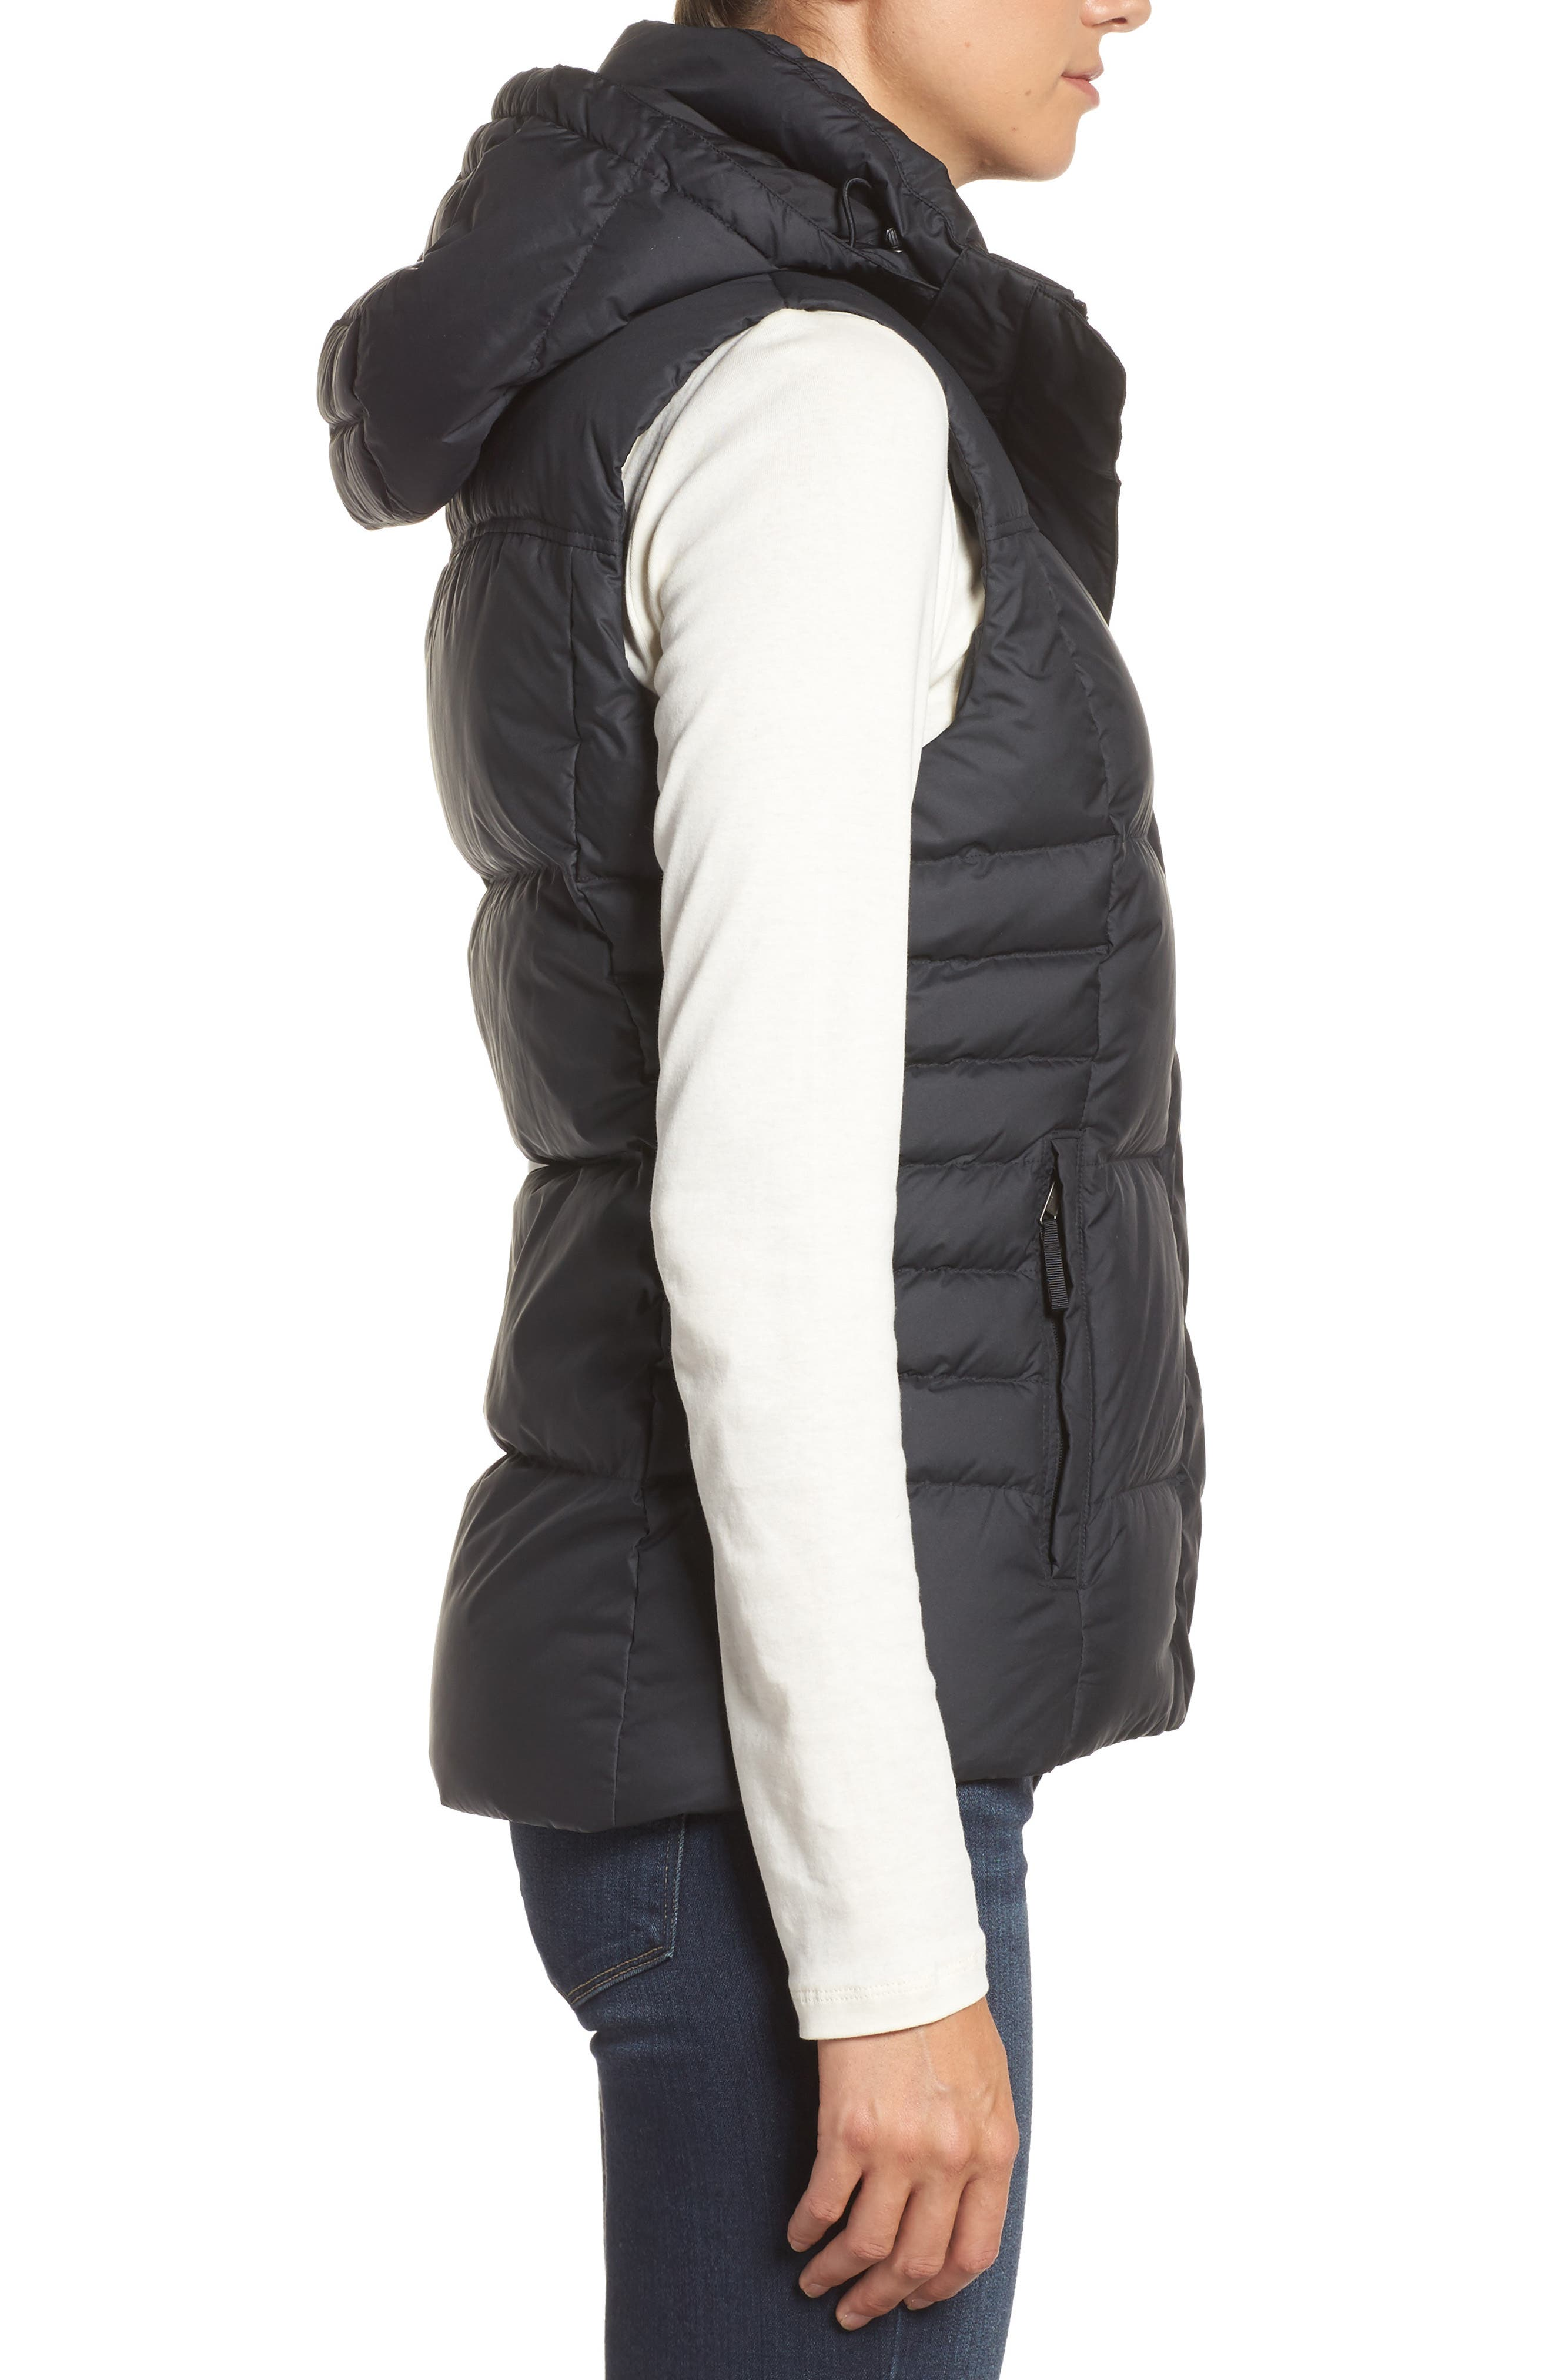 Down with It Hooded Down Vest,                             Alternate thumbnail 3, color,                             001